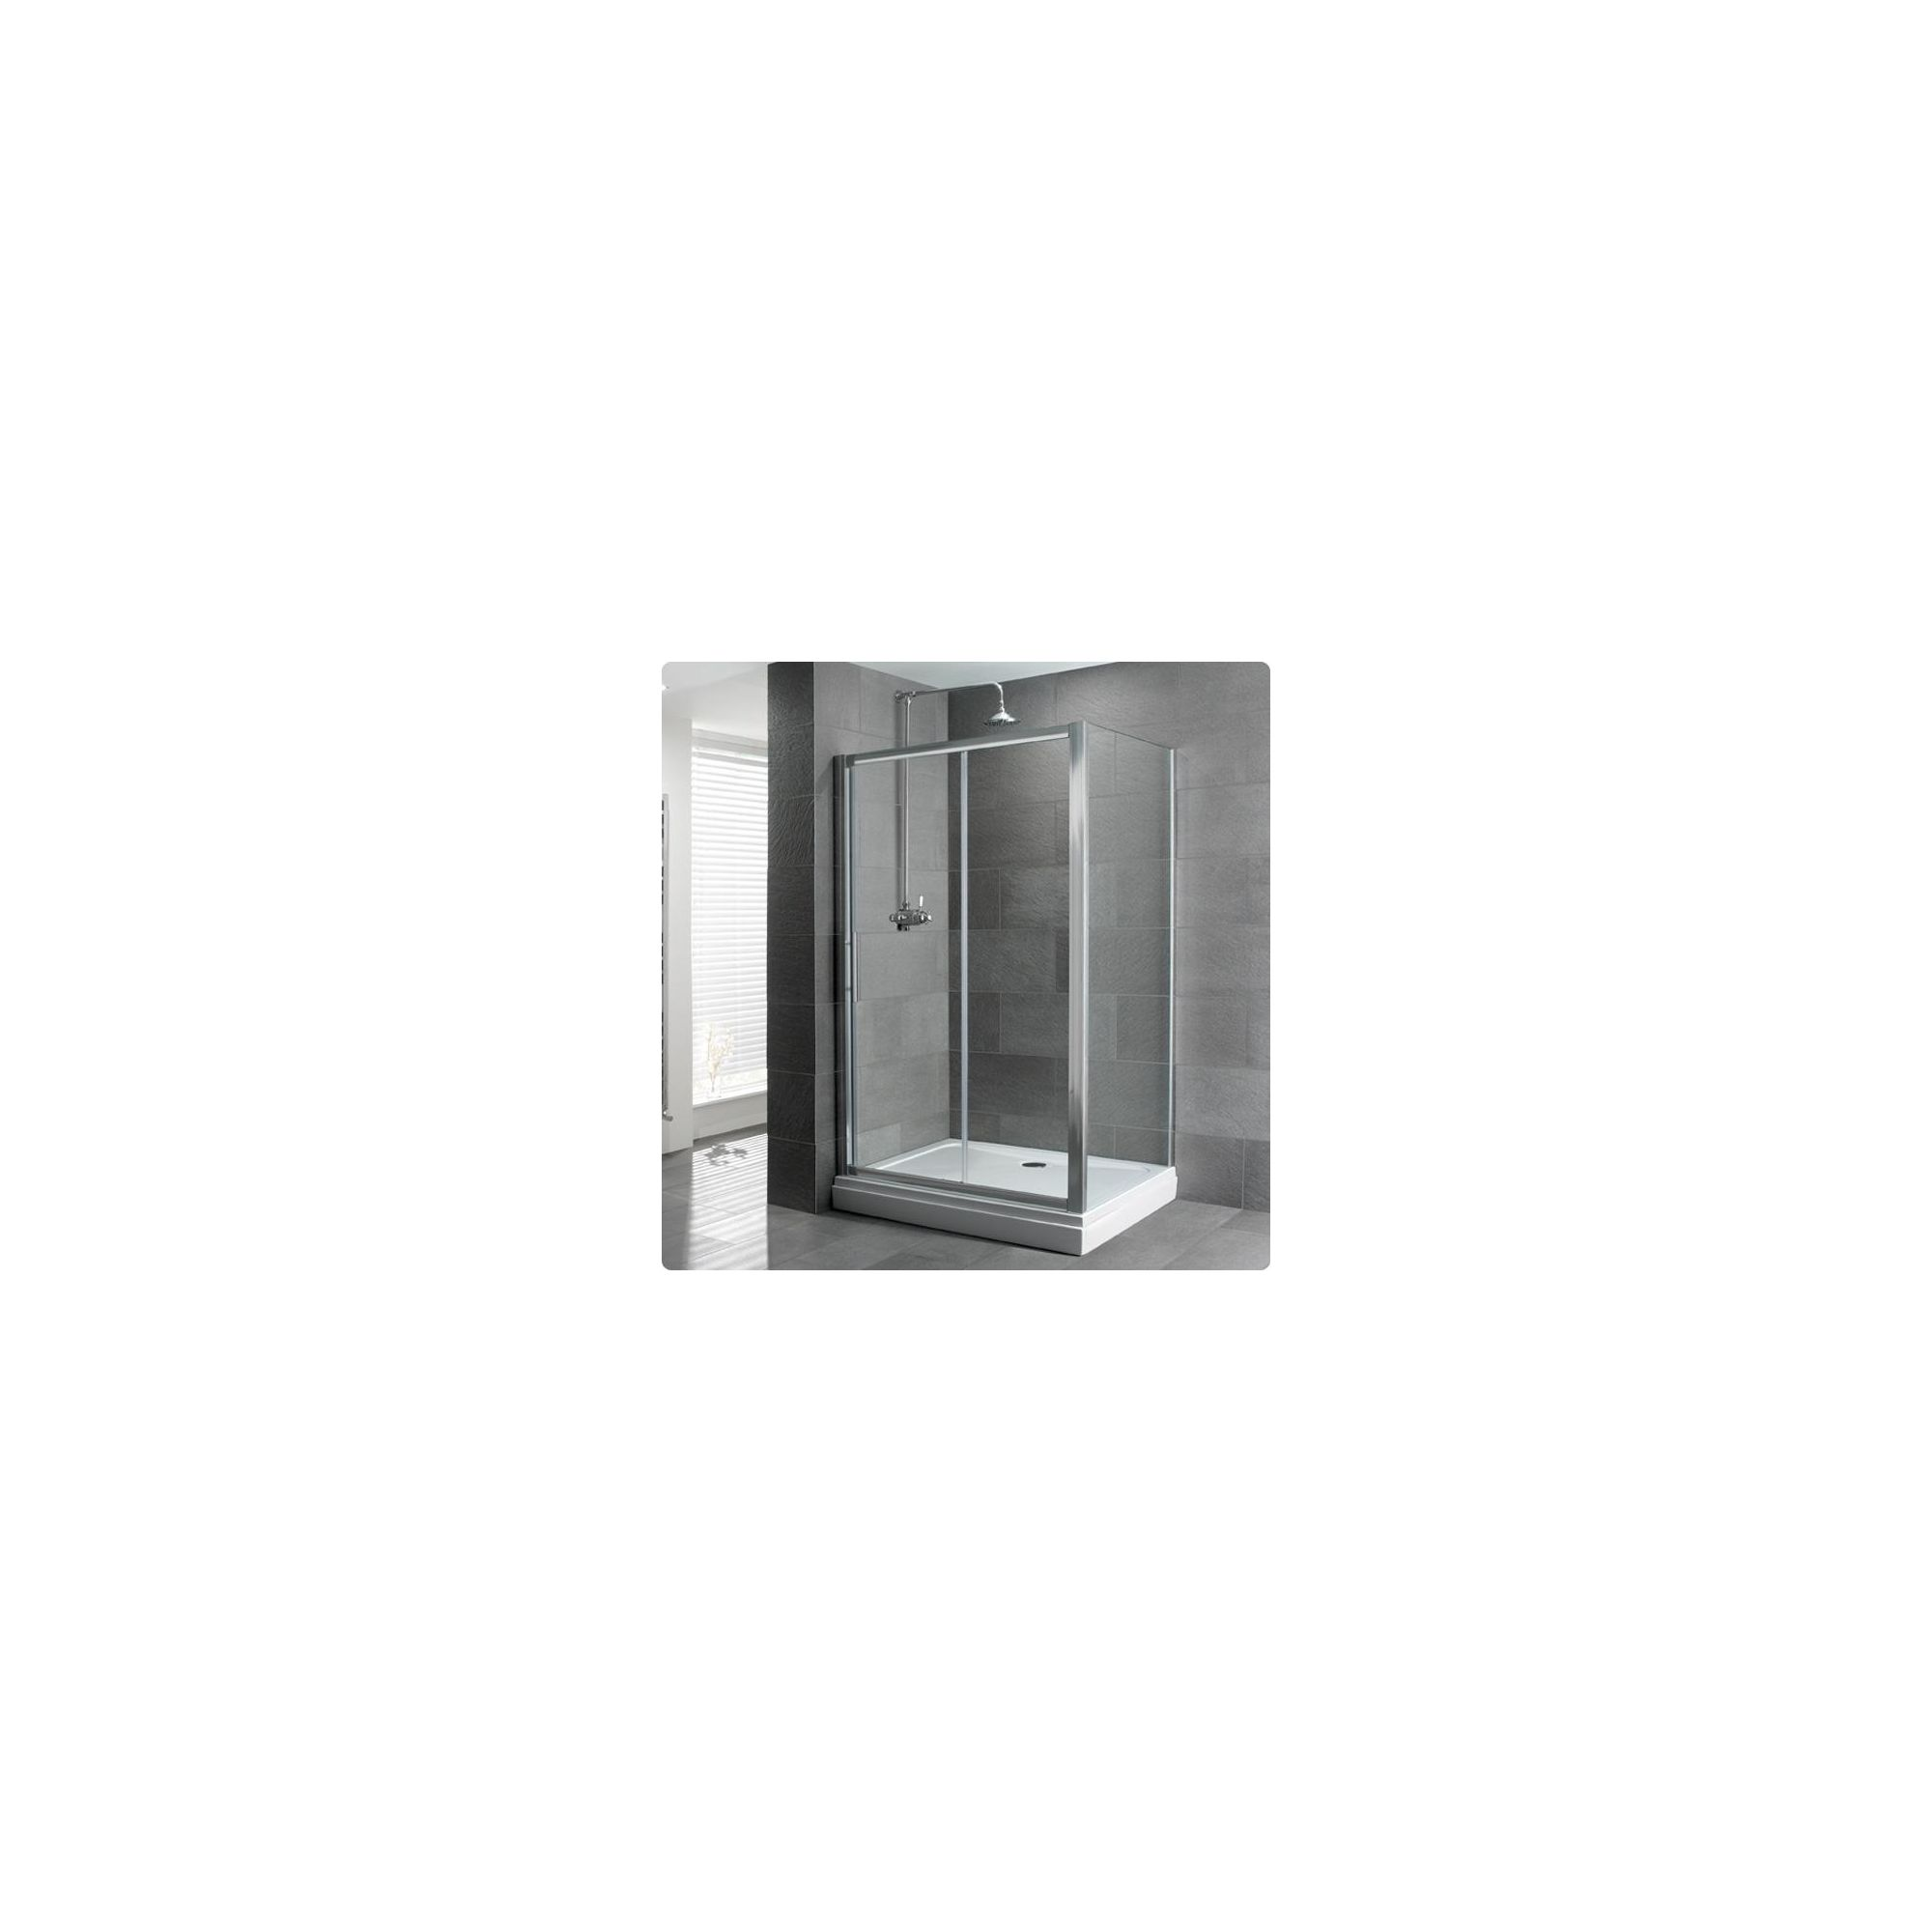 Duchy Select Silver Single Sliding Door Shower Enclosure, 1000mm x 800mm, Standard Tray, 6mm Glass at Tesco Direct